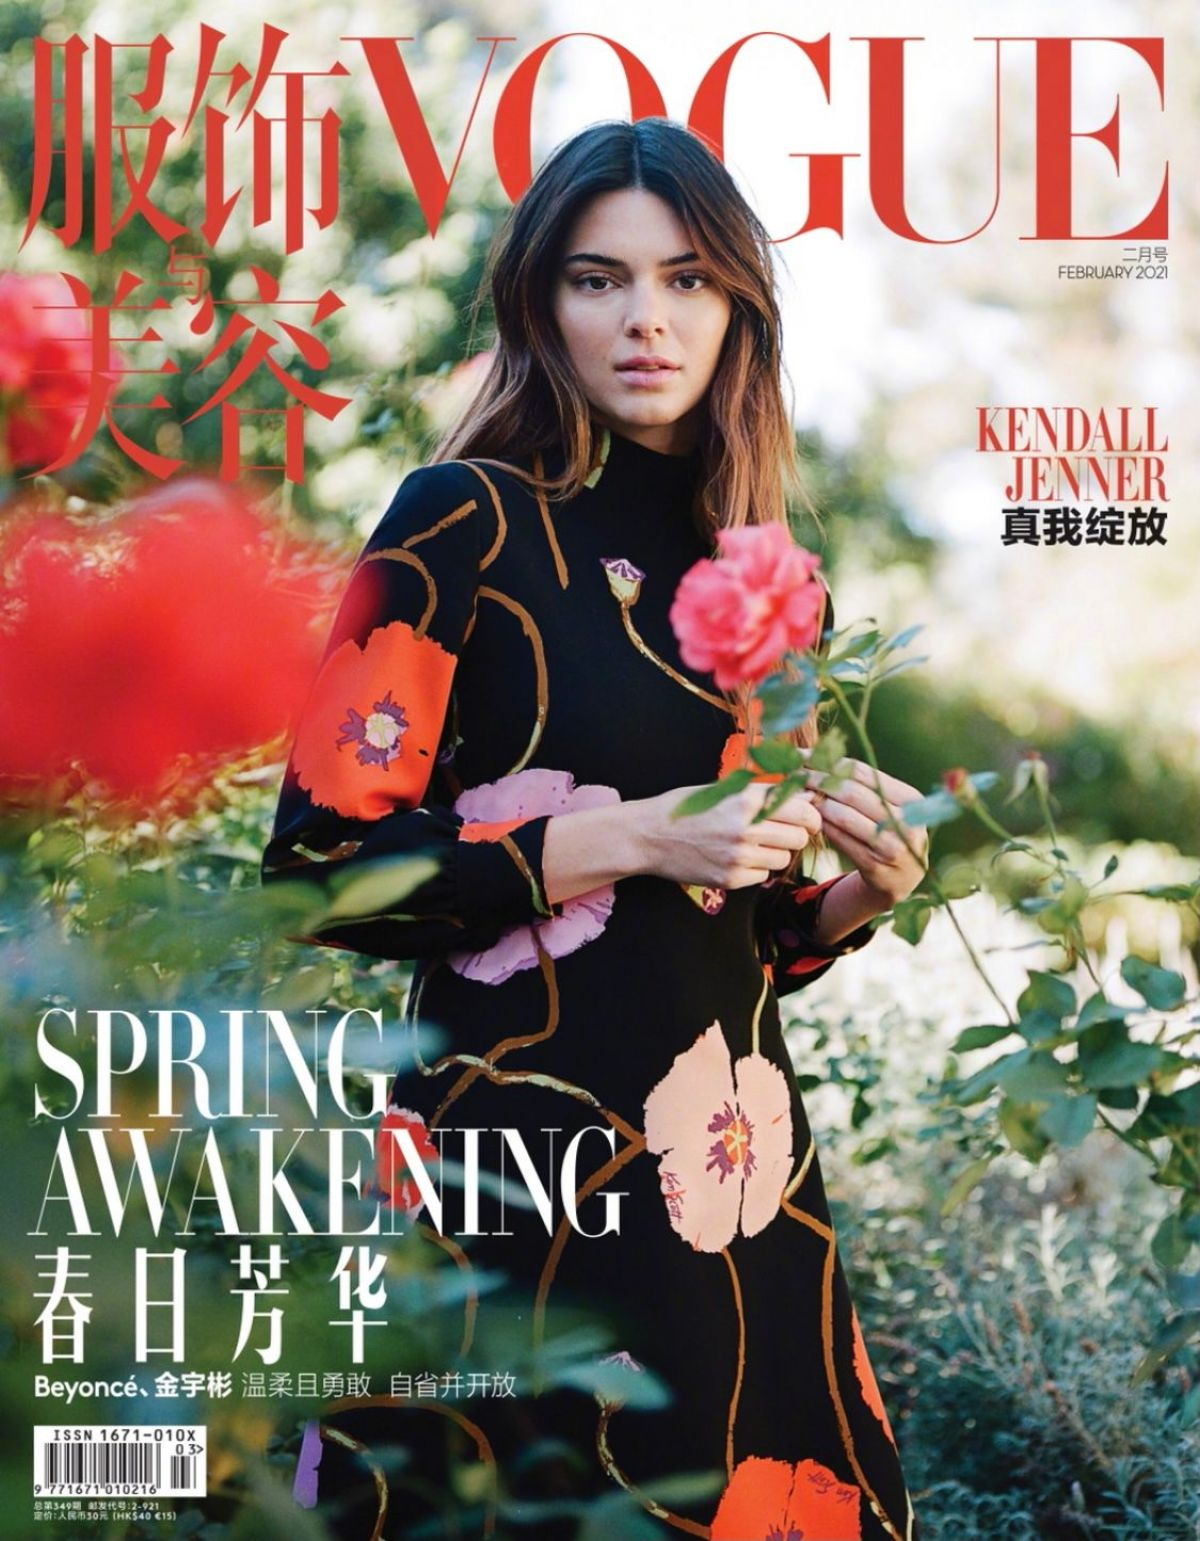 The February 2021 issue of Vogue China, the first under Wintour's direction, features Kendall Jenner in a Gucci floral dress in a flower garden on the cover.